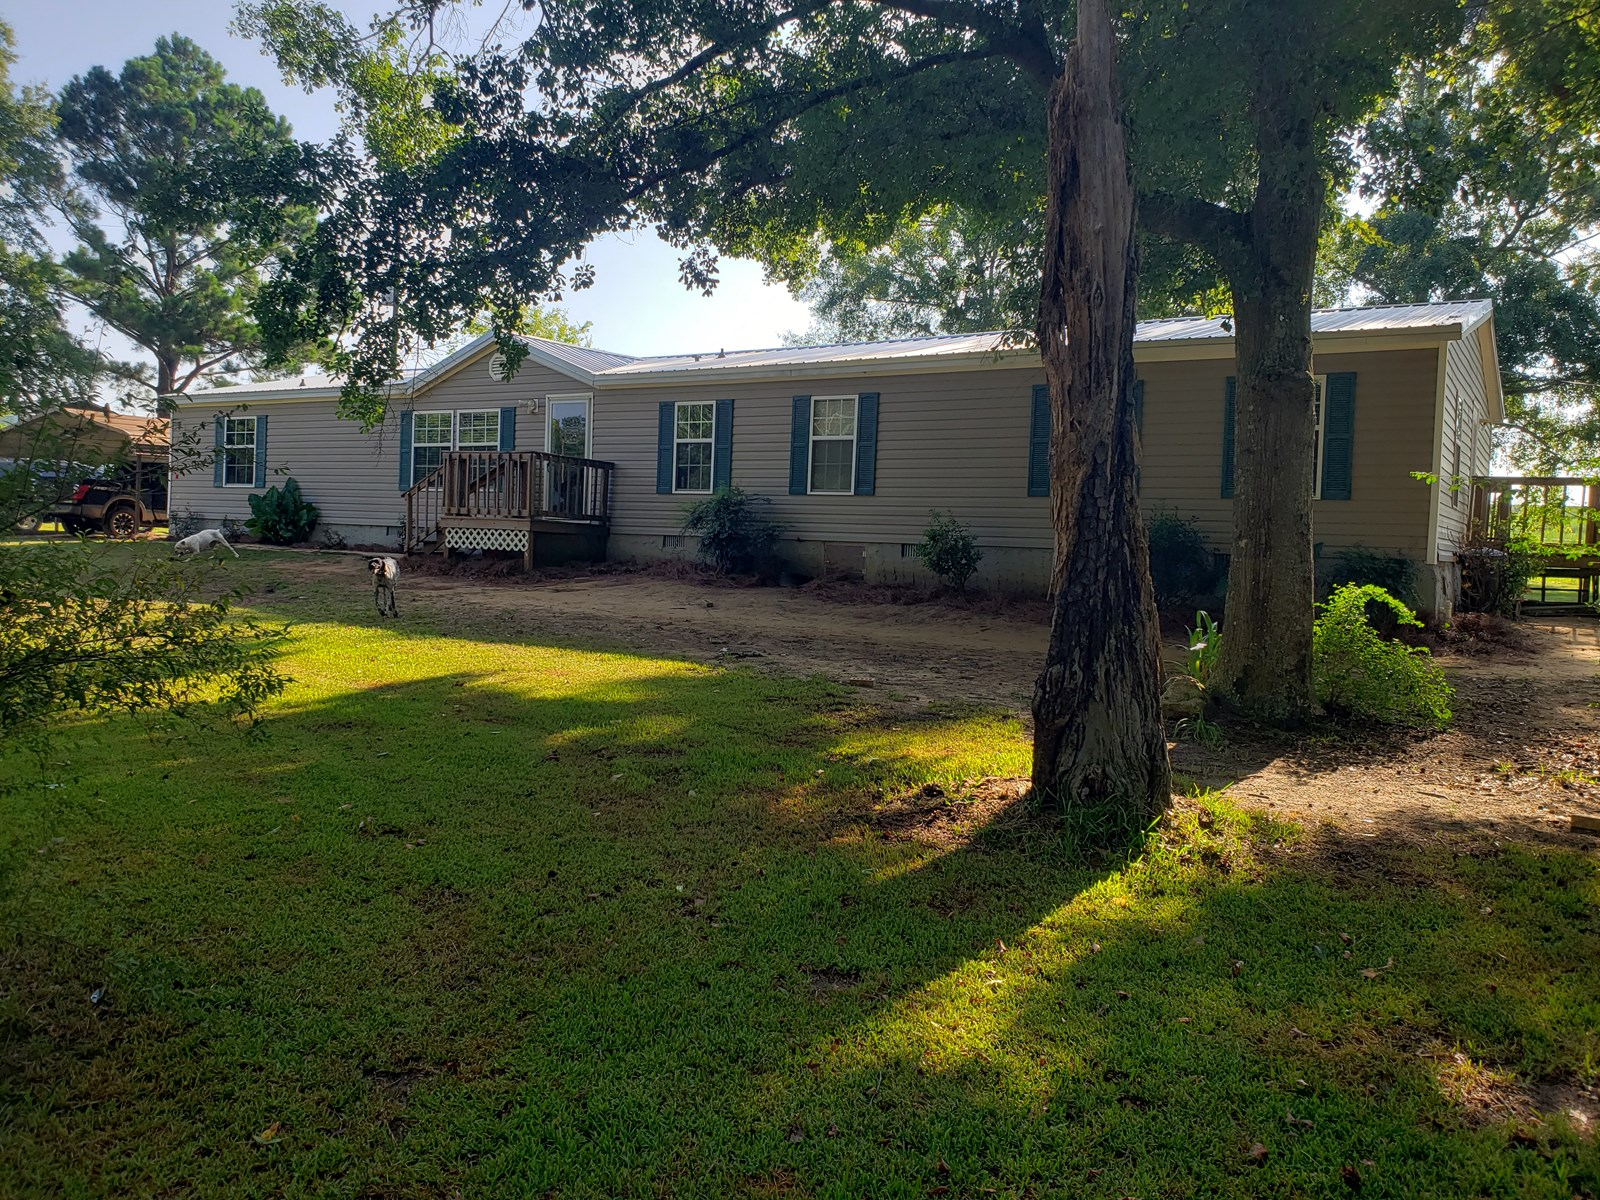 4B/2B HOME FOR SALE ON 2.87 ACRES, HARTFORD, ALABAMA